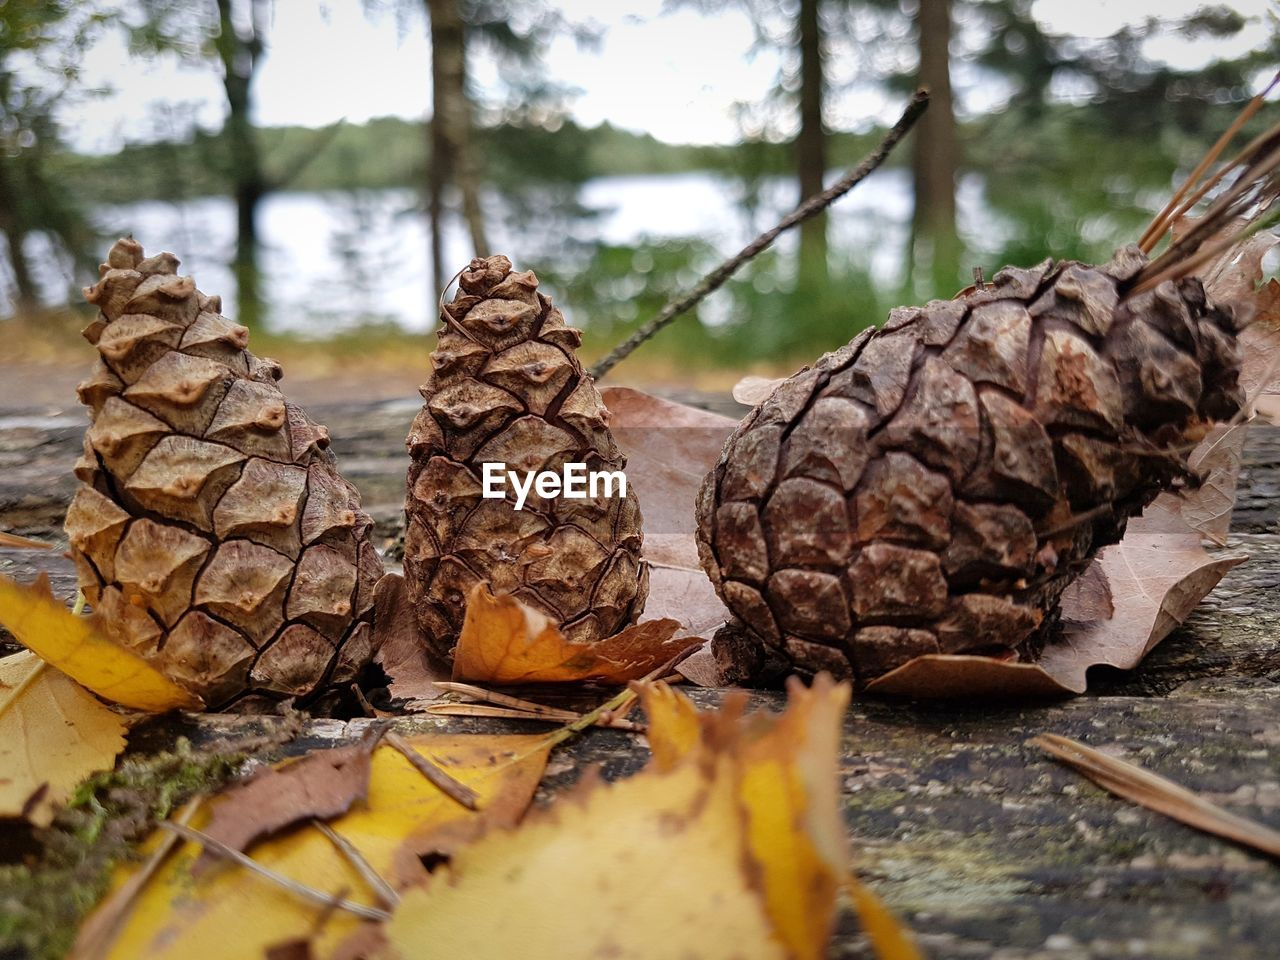 nature, close-up, plant, day, tree, leaf, selective focus, plant part, no people, dry, food and drink, land, brown, outdoors, food, pine cone, forest, focus on foreground, beauty in nature, falling, leaves, change, surface level, dried, coniferous tree